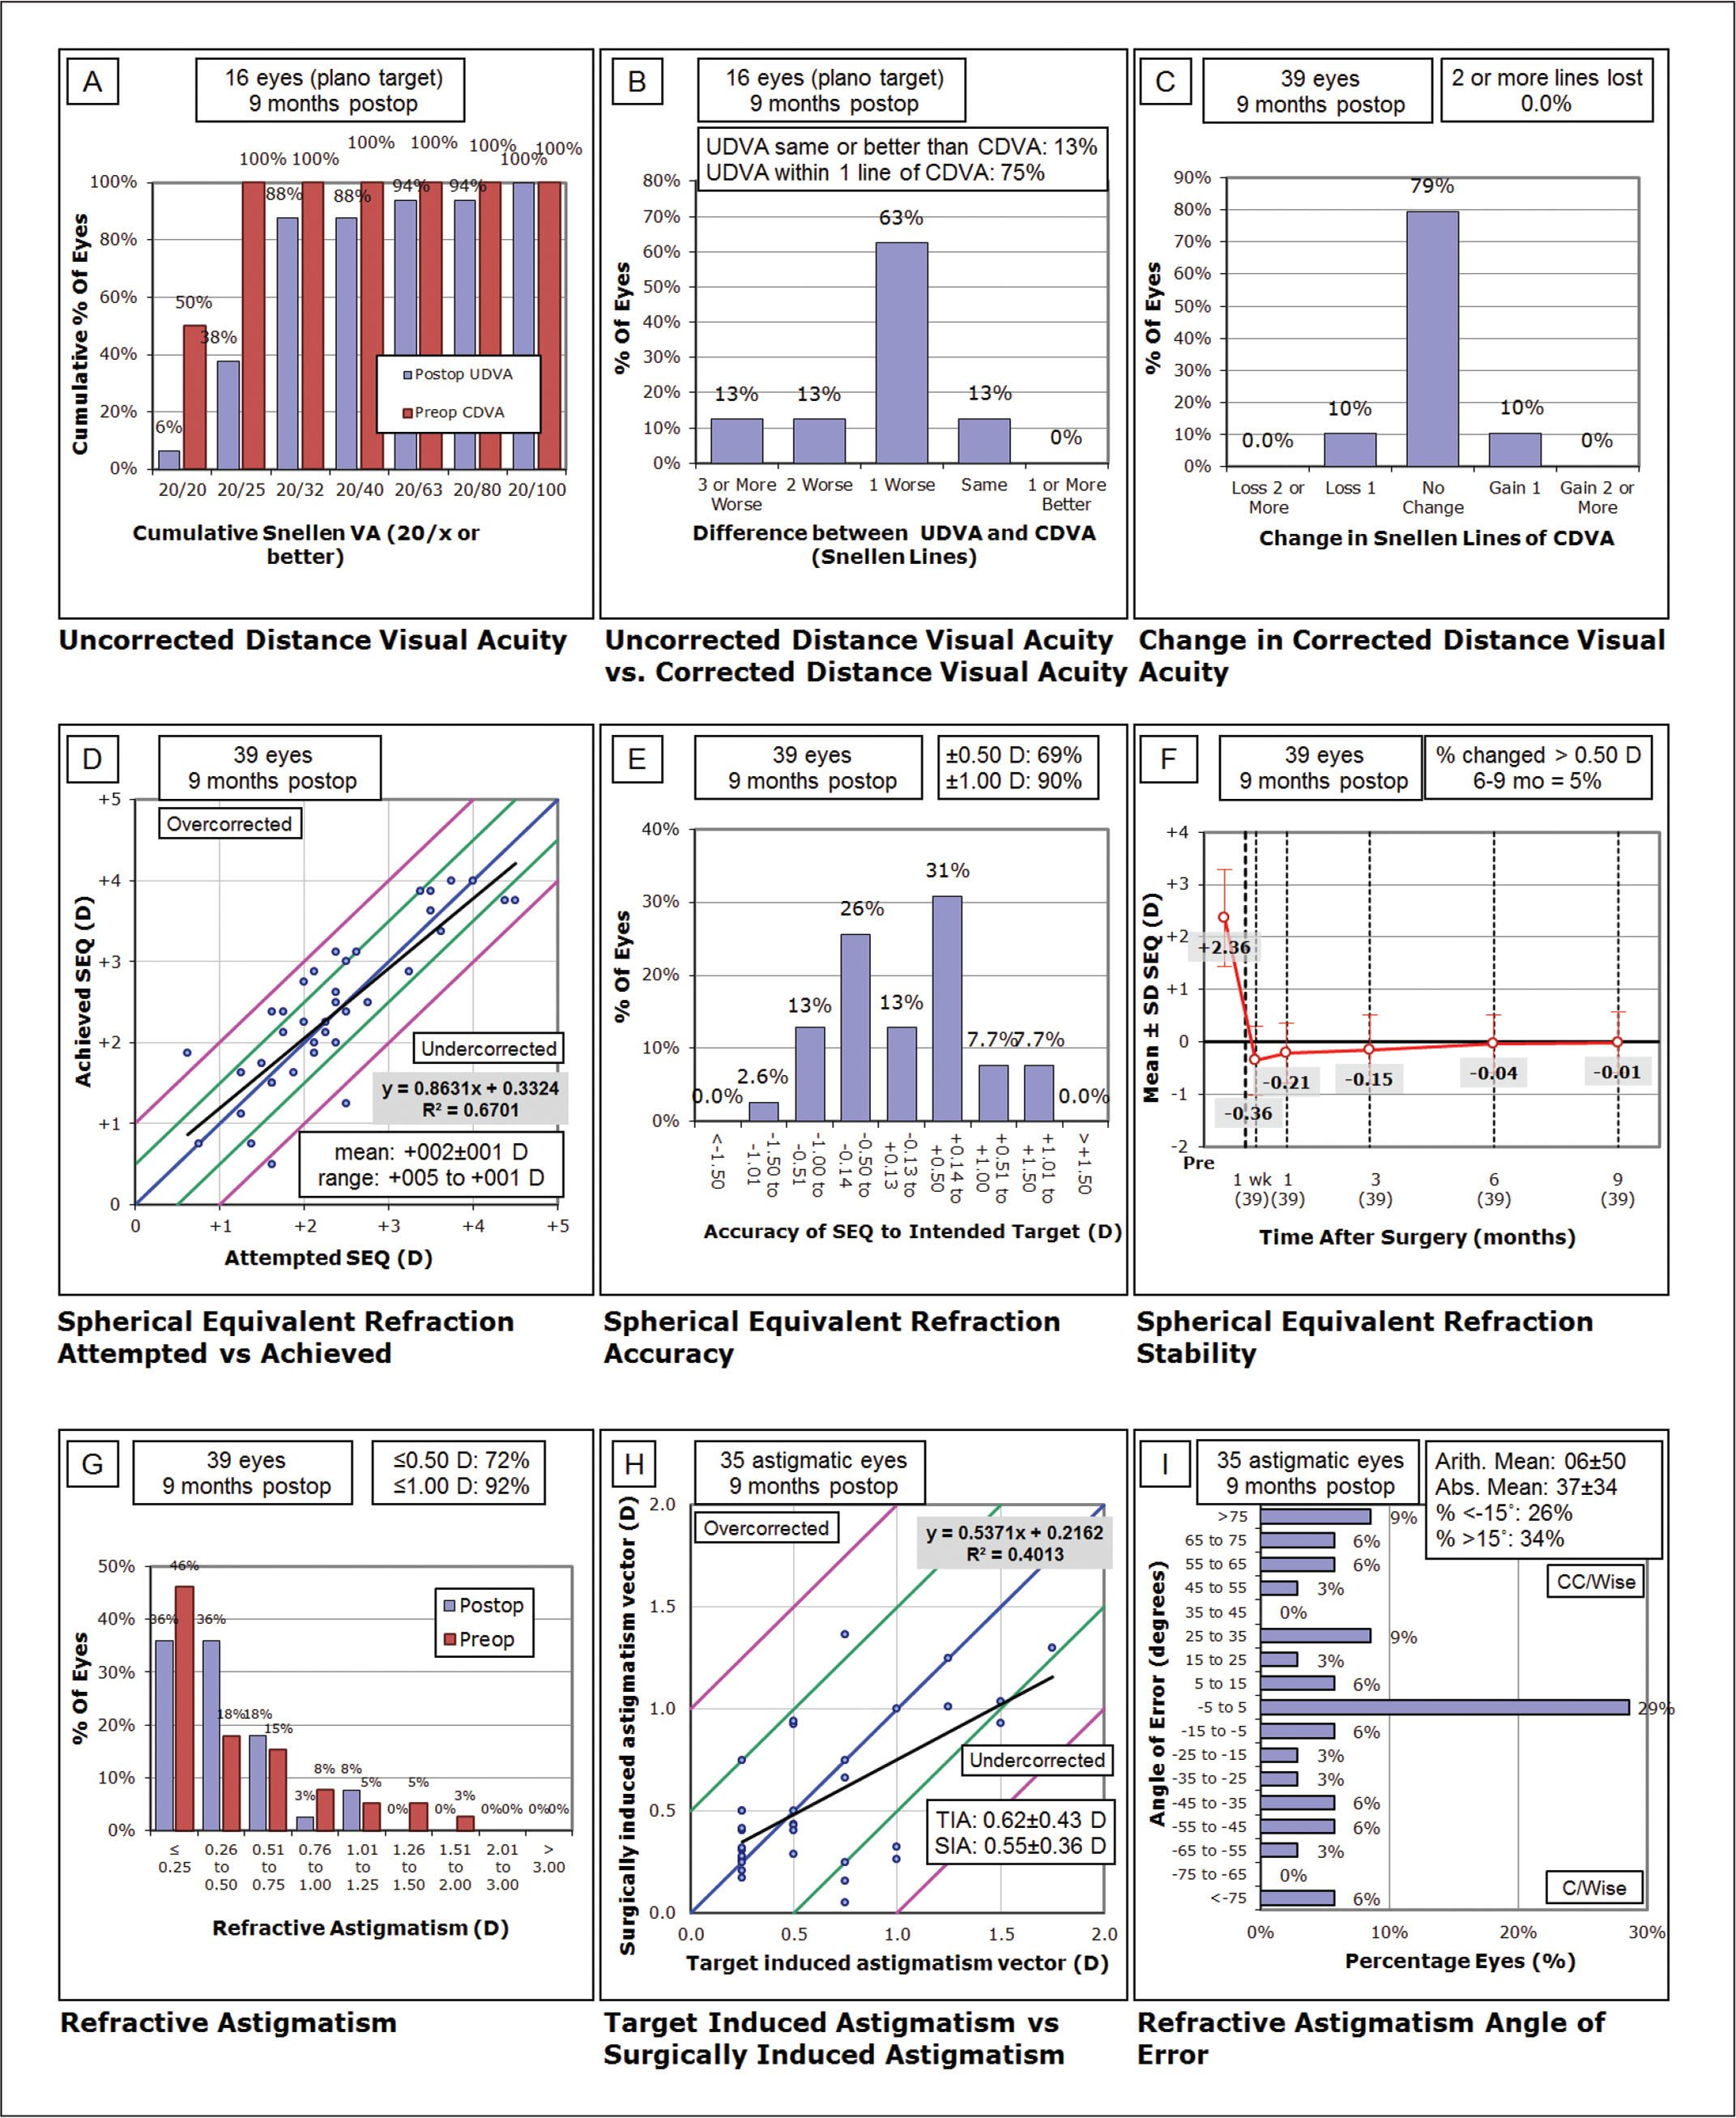 Outcomes according to the standardized graphs and terms for refractive surgery results.